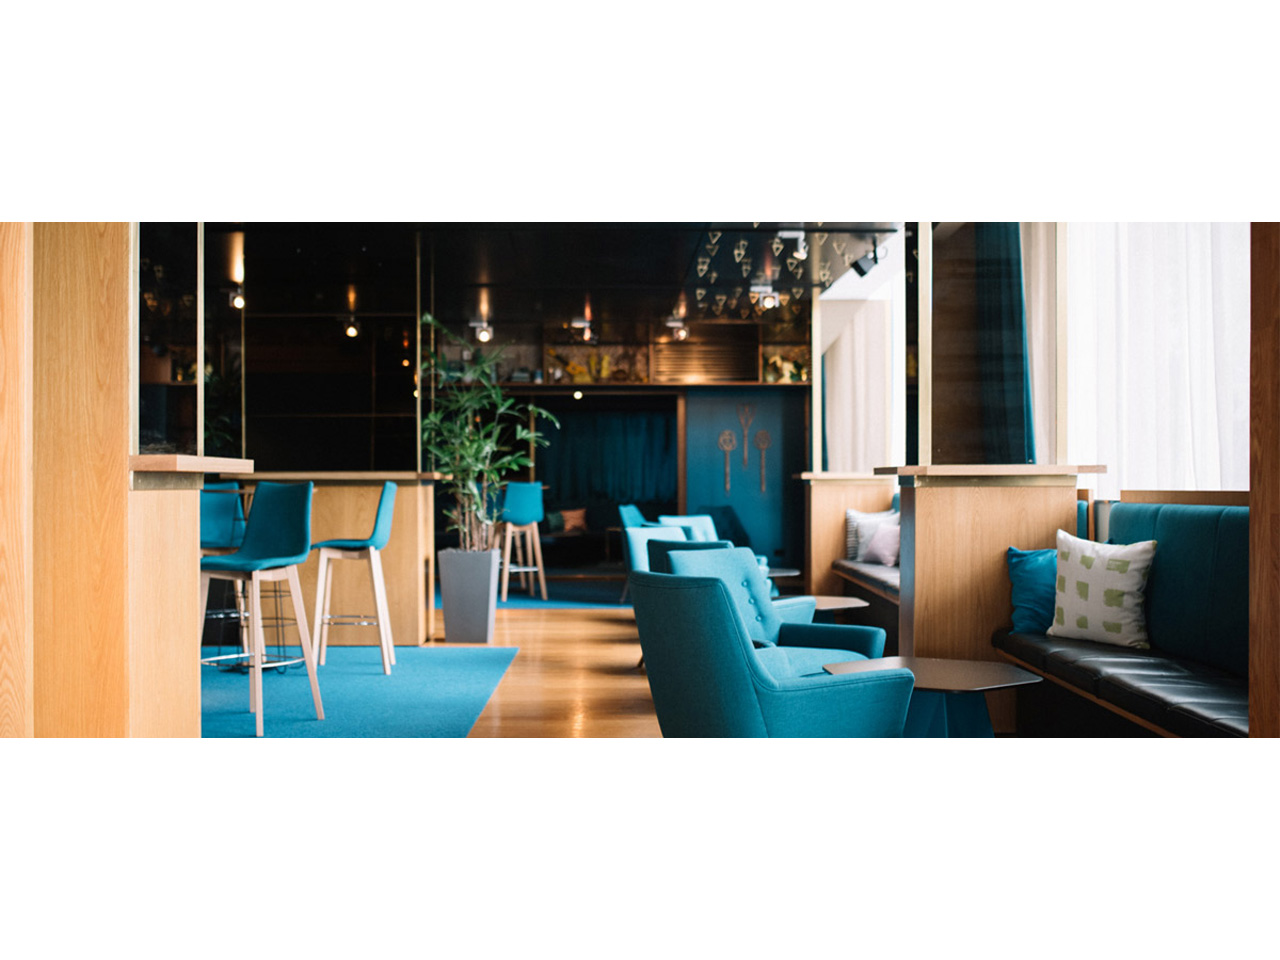 Function room with stylish blue and wood decor with matching blue chairs and wooden floor